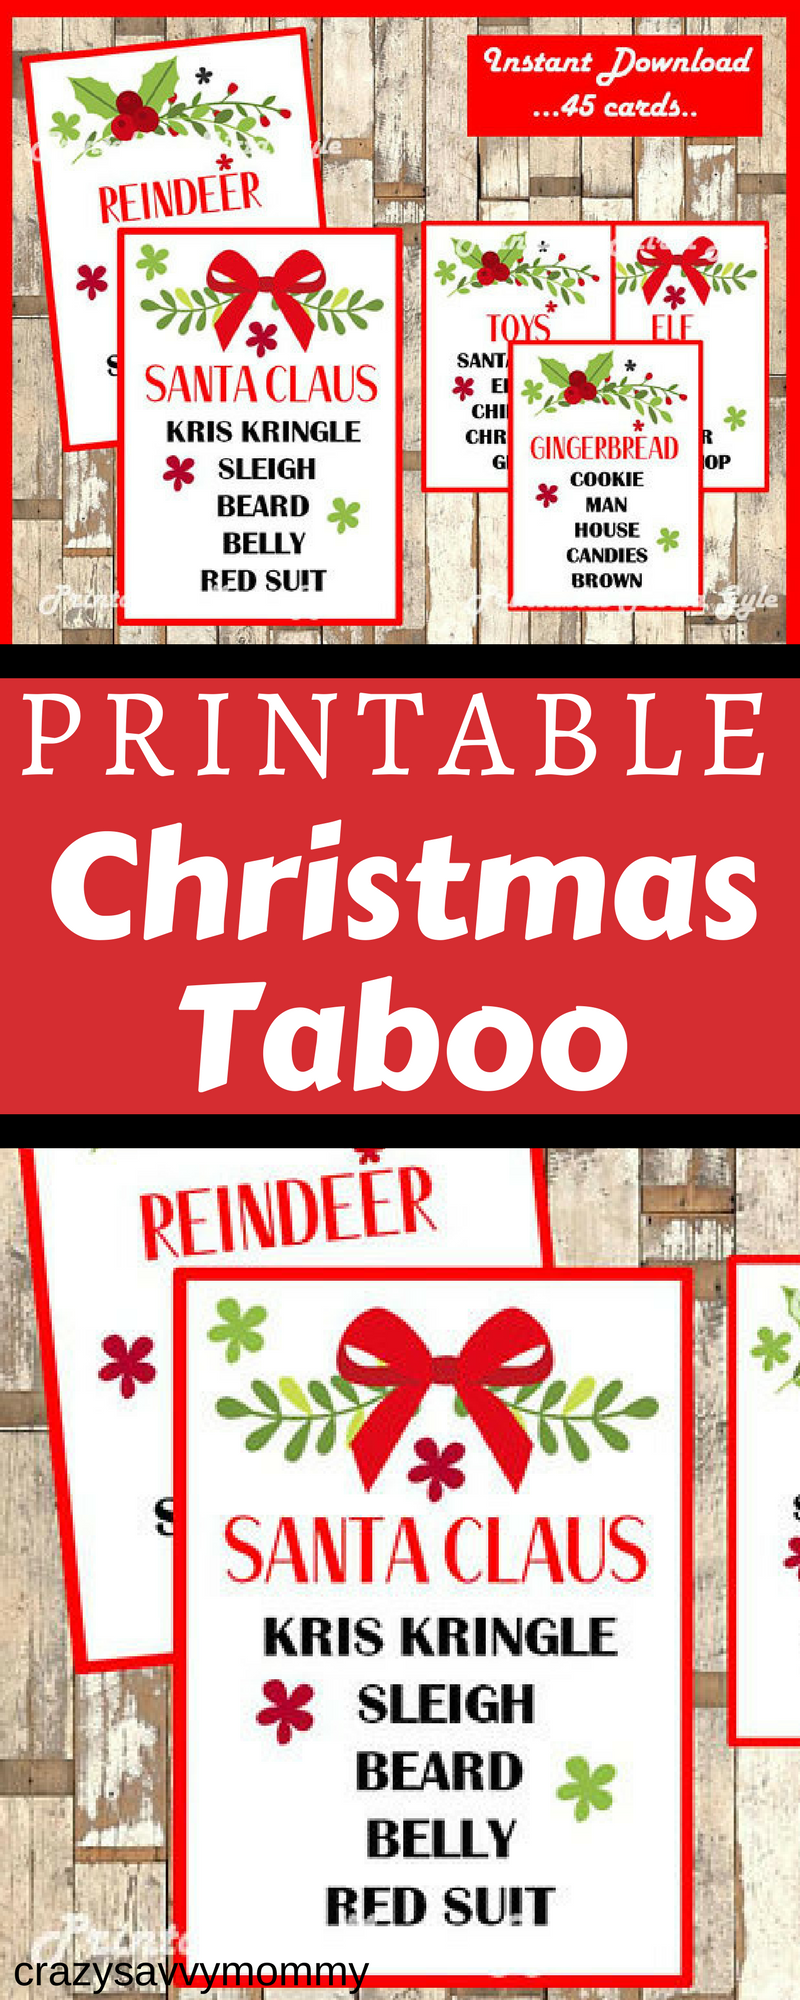 Only 2 49 Printable Christmas Taboo Game Celebrate The Holidays With This Fun And Festive Christmas Taboo Game Includes 45 Unique Playing Cards Taboo Game C